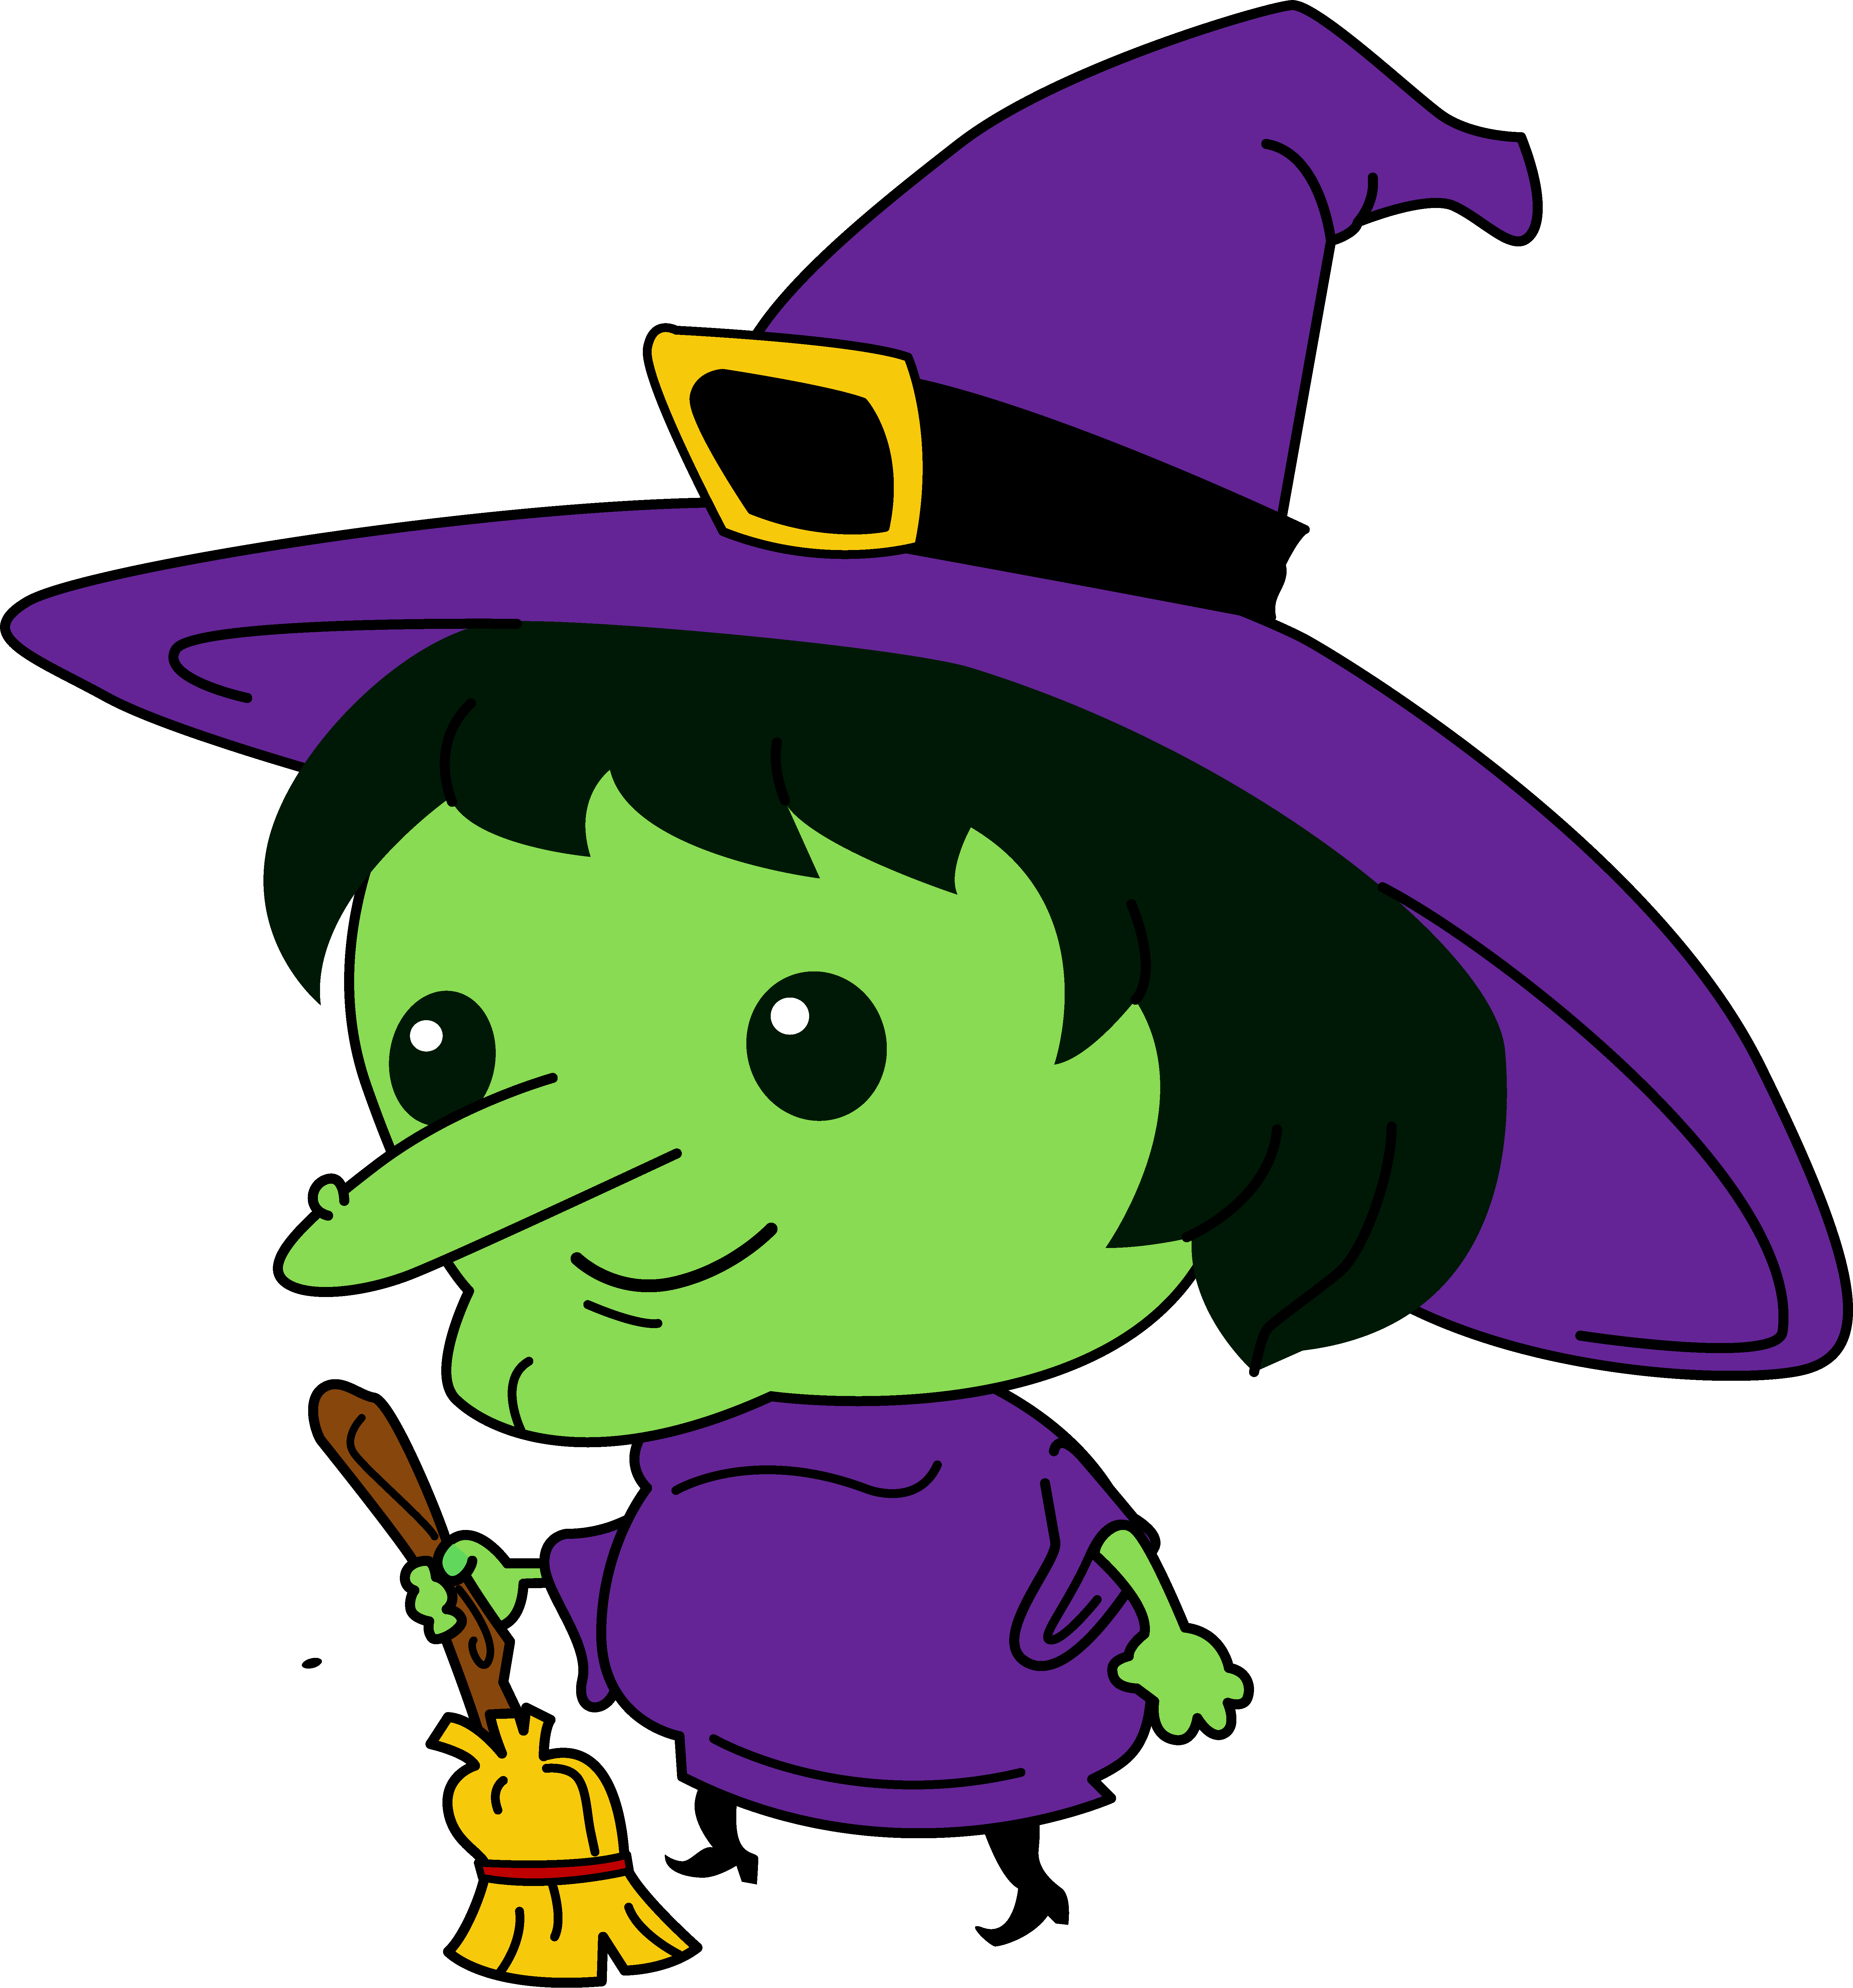 Witch Clip Art Silhouette | Clipart Panda - Free Clipart Images